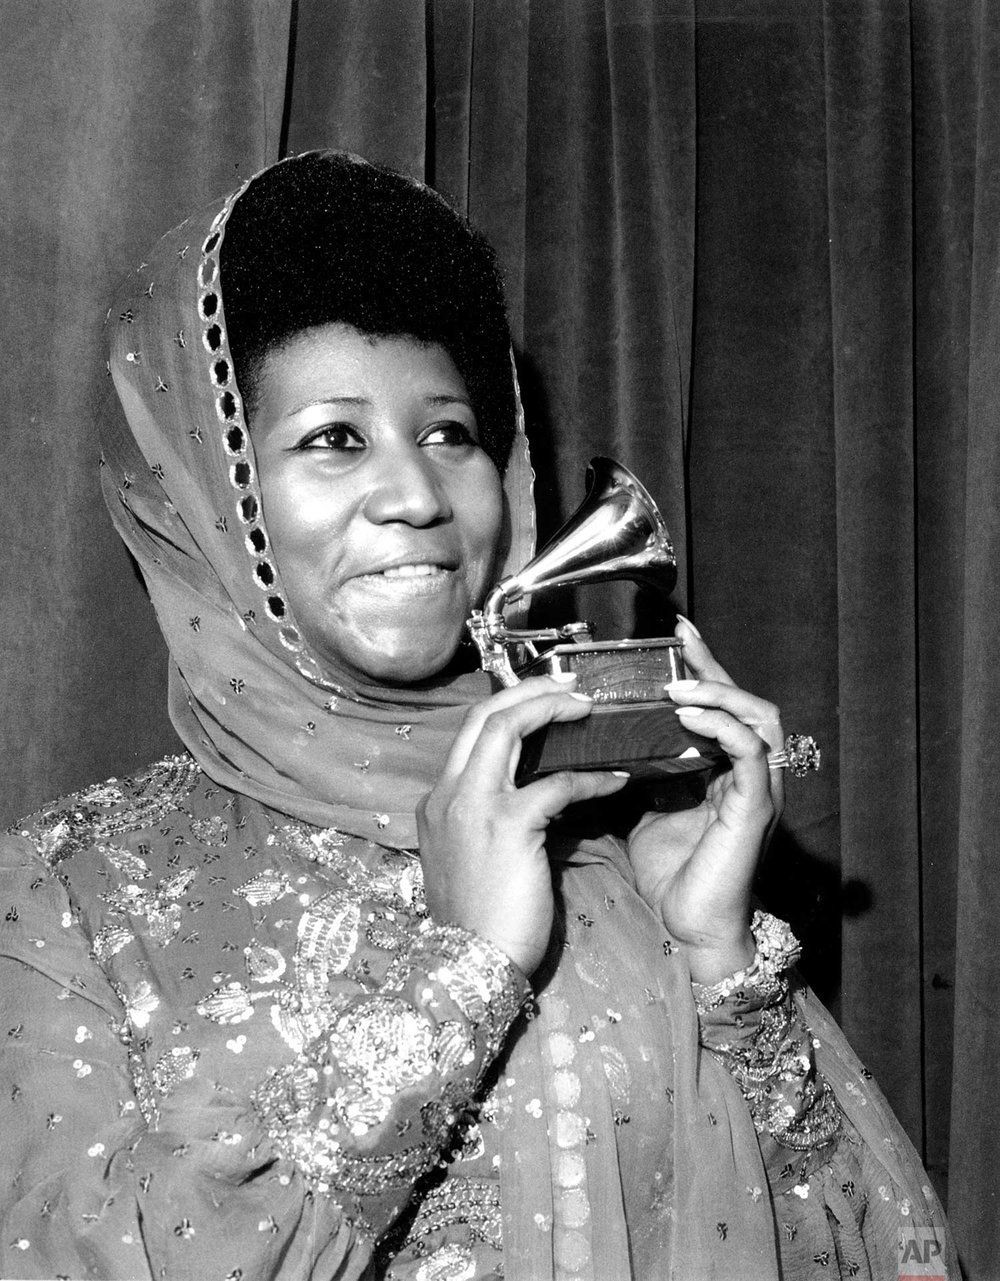 Aretha Franklin poses with her Grammy Award at the 17th Annual Grammy Award presentation in New York on March 3, 1975. (AP Photo)